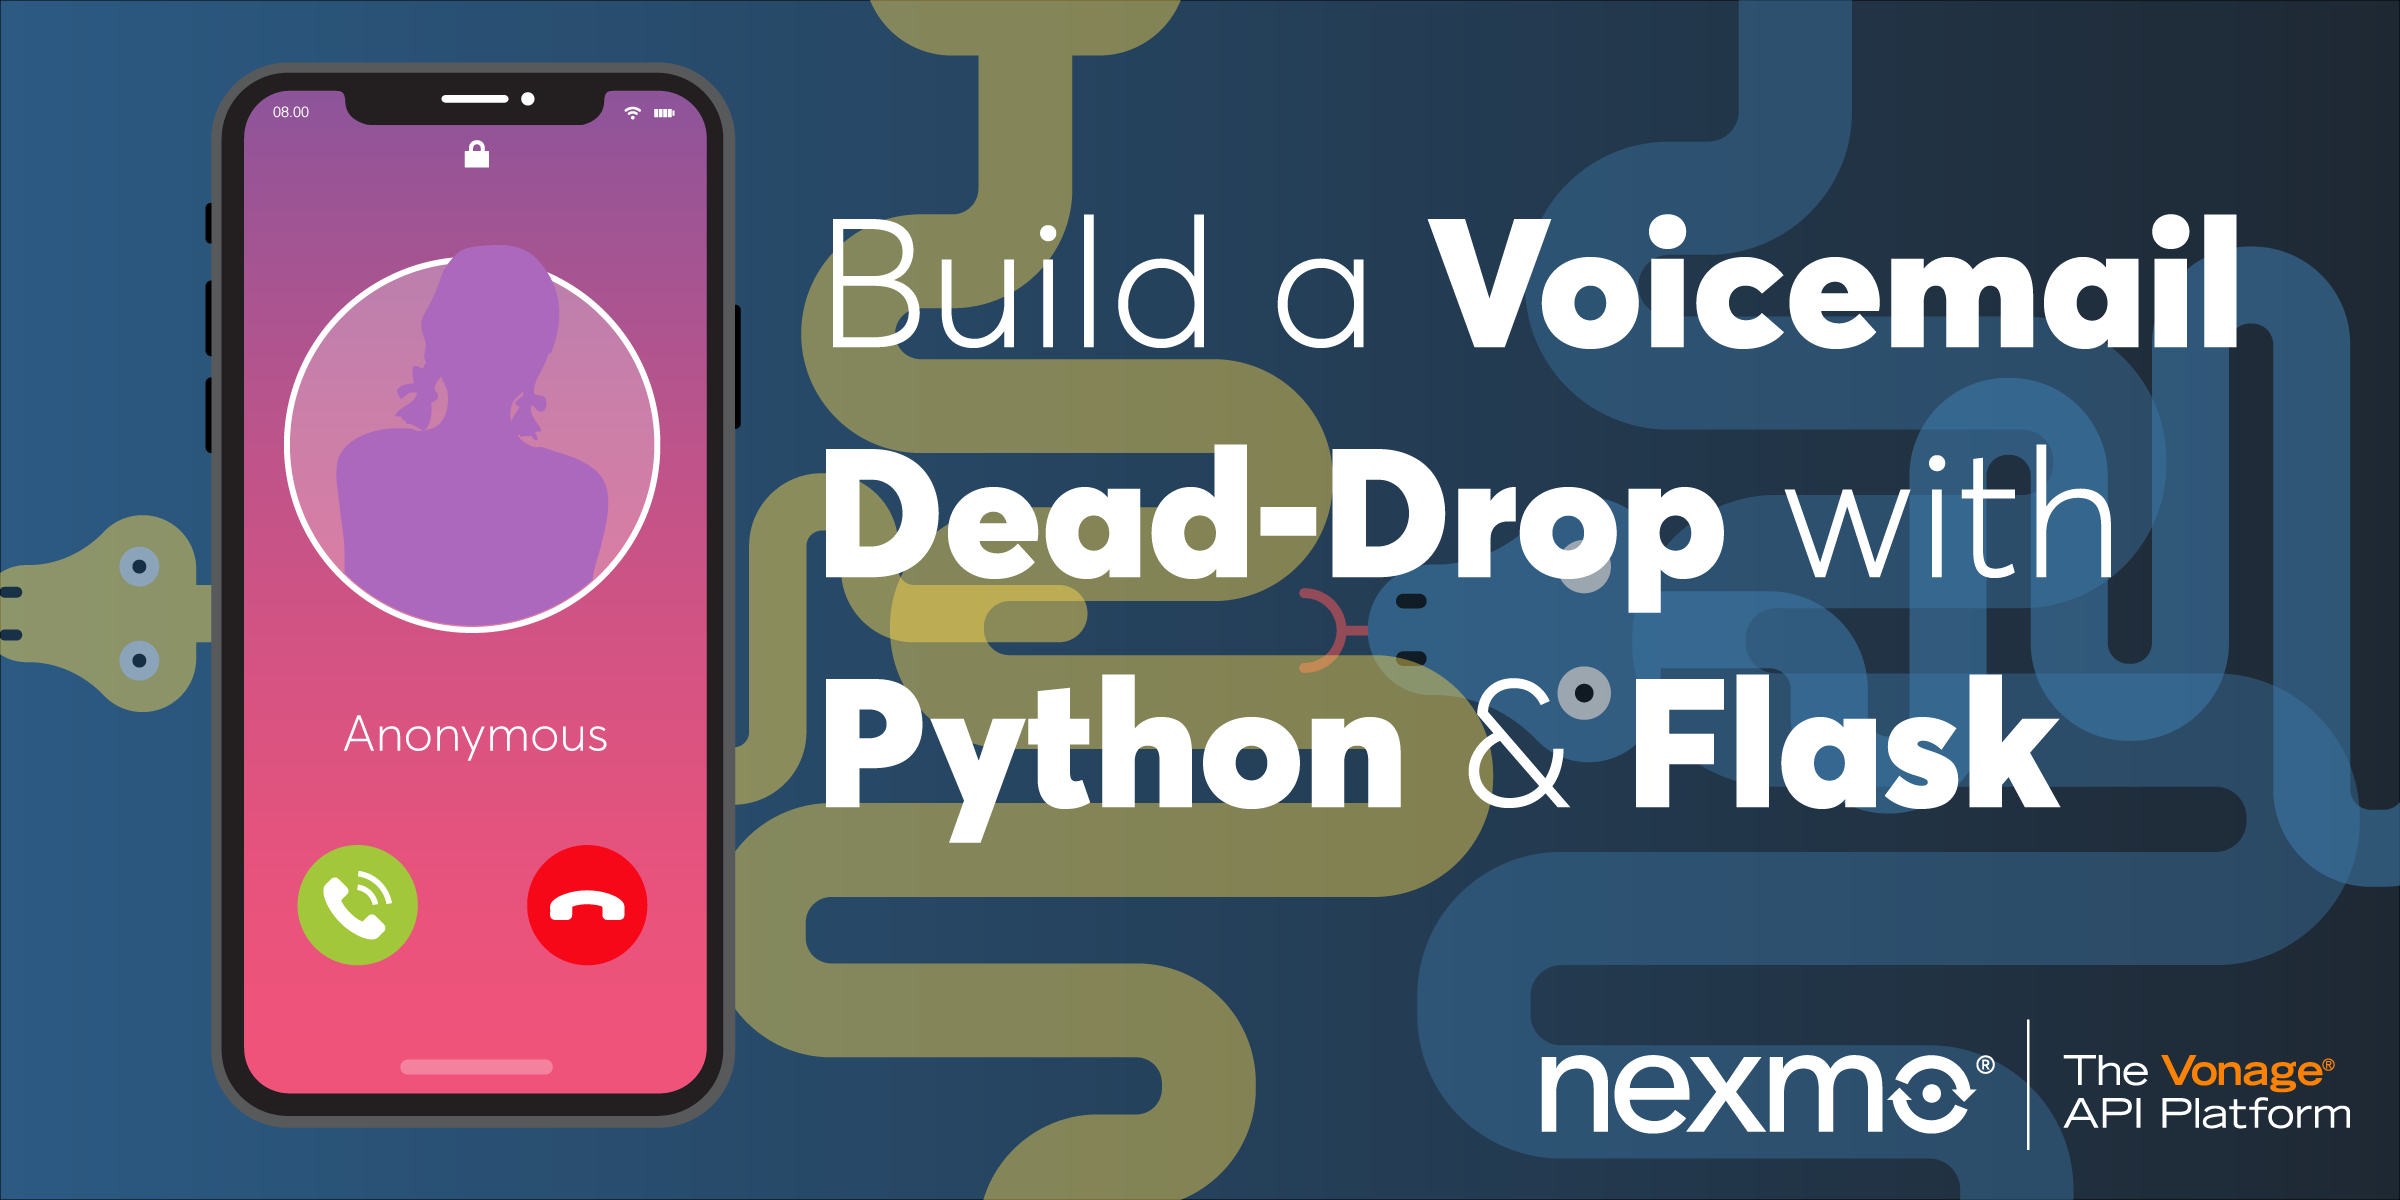 How to Build a Voicemail Dead-Drop with Python and Flask